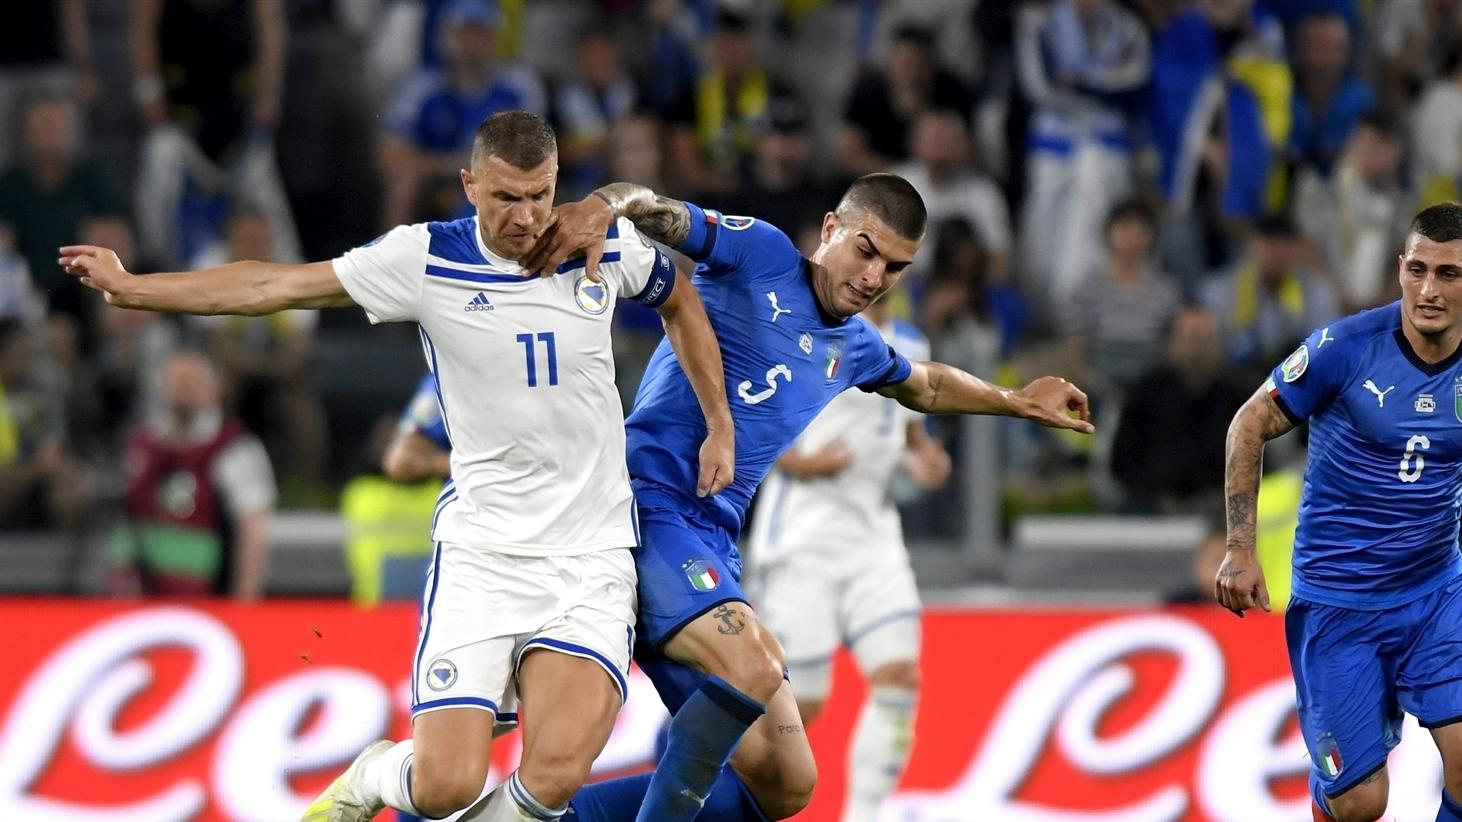 Soi kèo Bosnia vs Italy, 02h45 ngày 19/11, Nations League